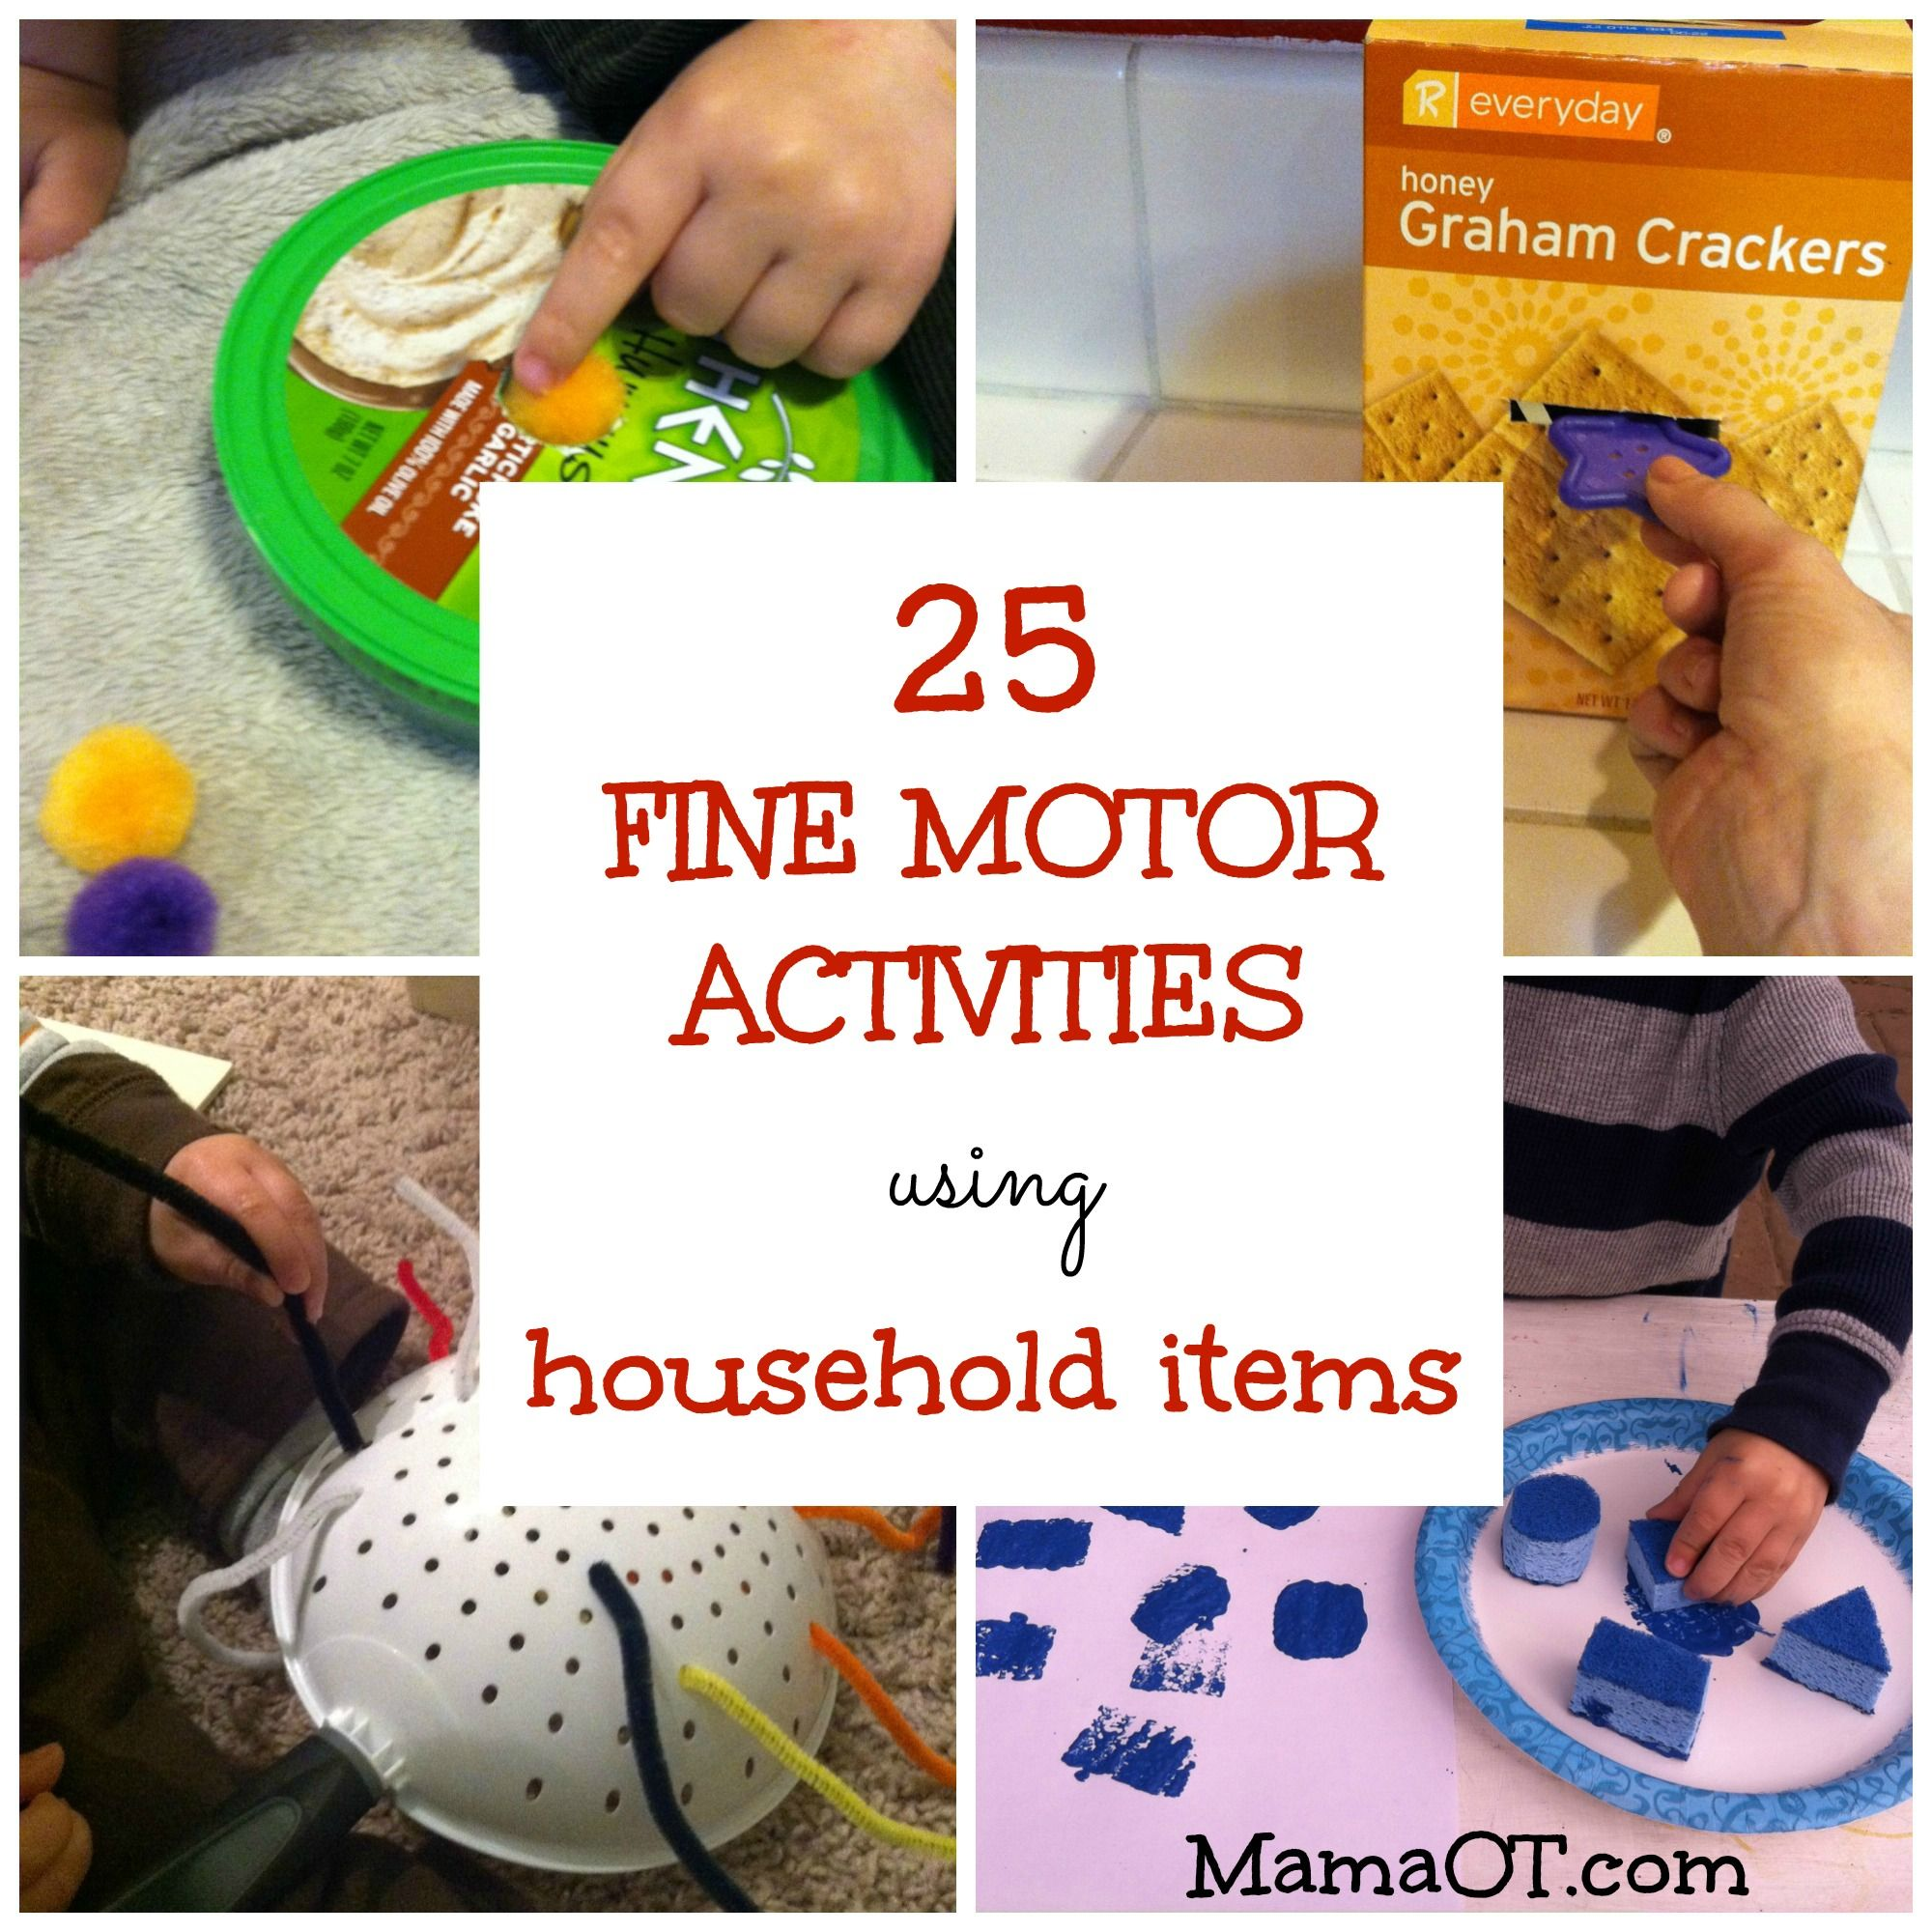 Spiele Motorik Fördern 25 Fine Motor Activities Using Household Items Spiele